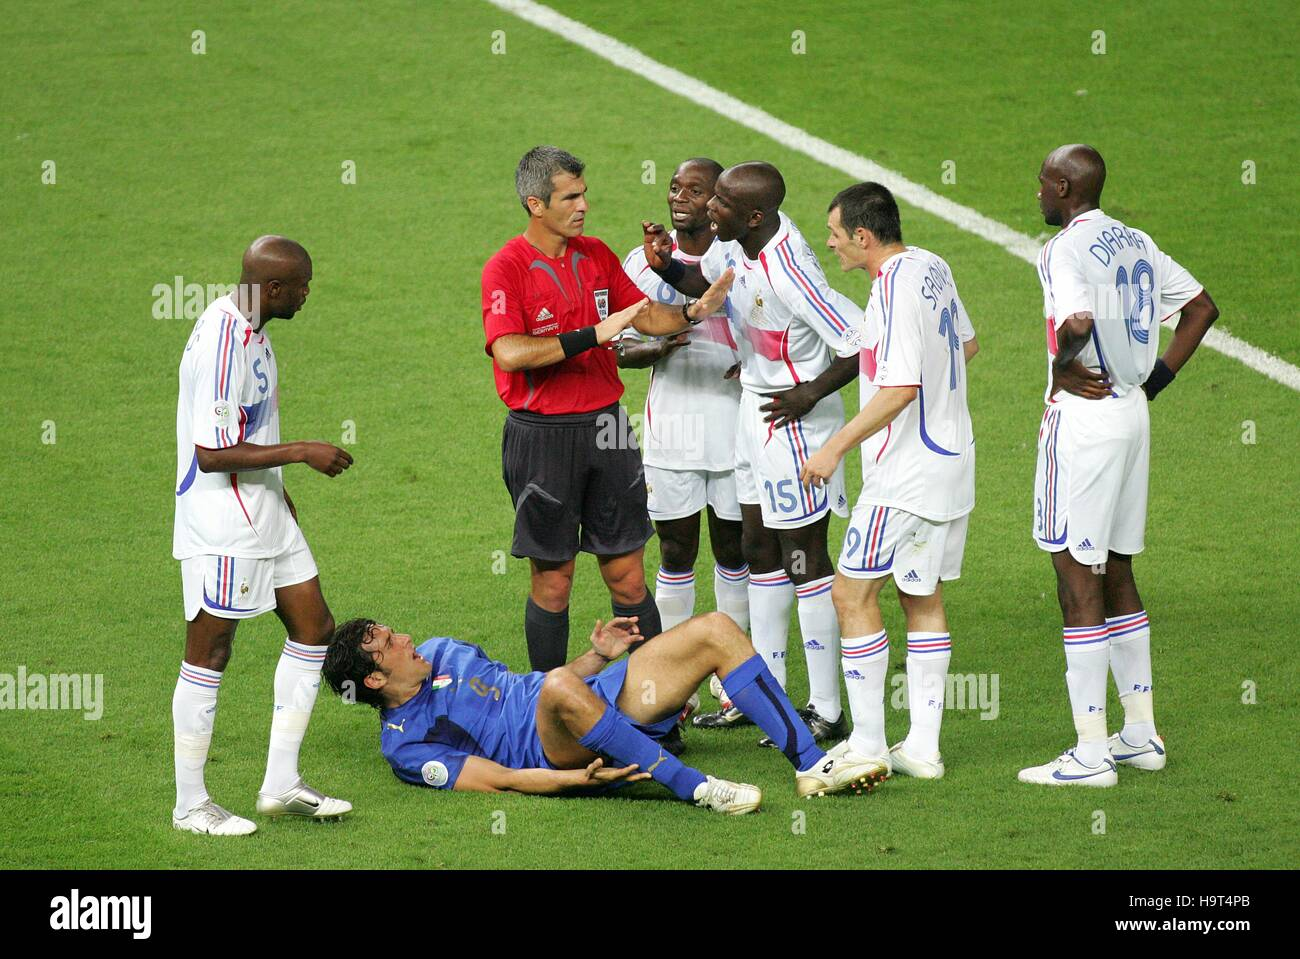 FRENCH TEAM APPEAL ITALY V FRANCE OLYMPIASTADION BERLIN GERMANY 09 July 2006 - Stock Image